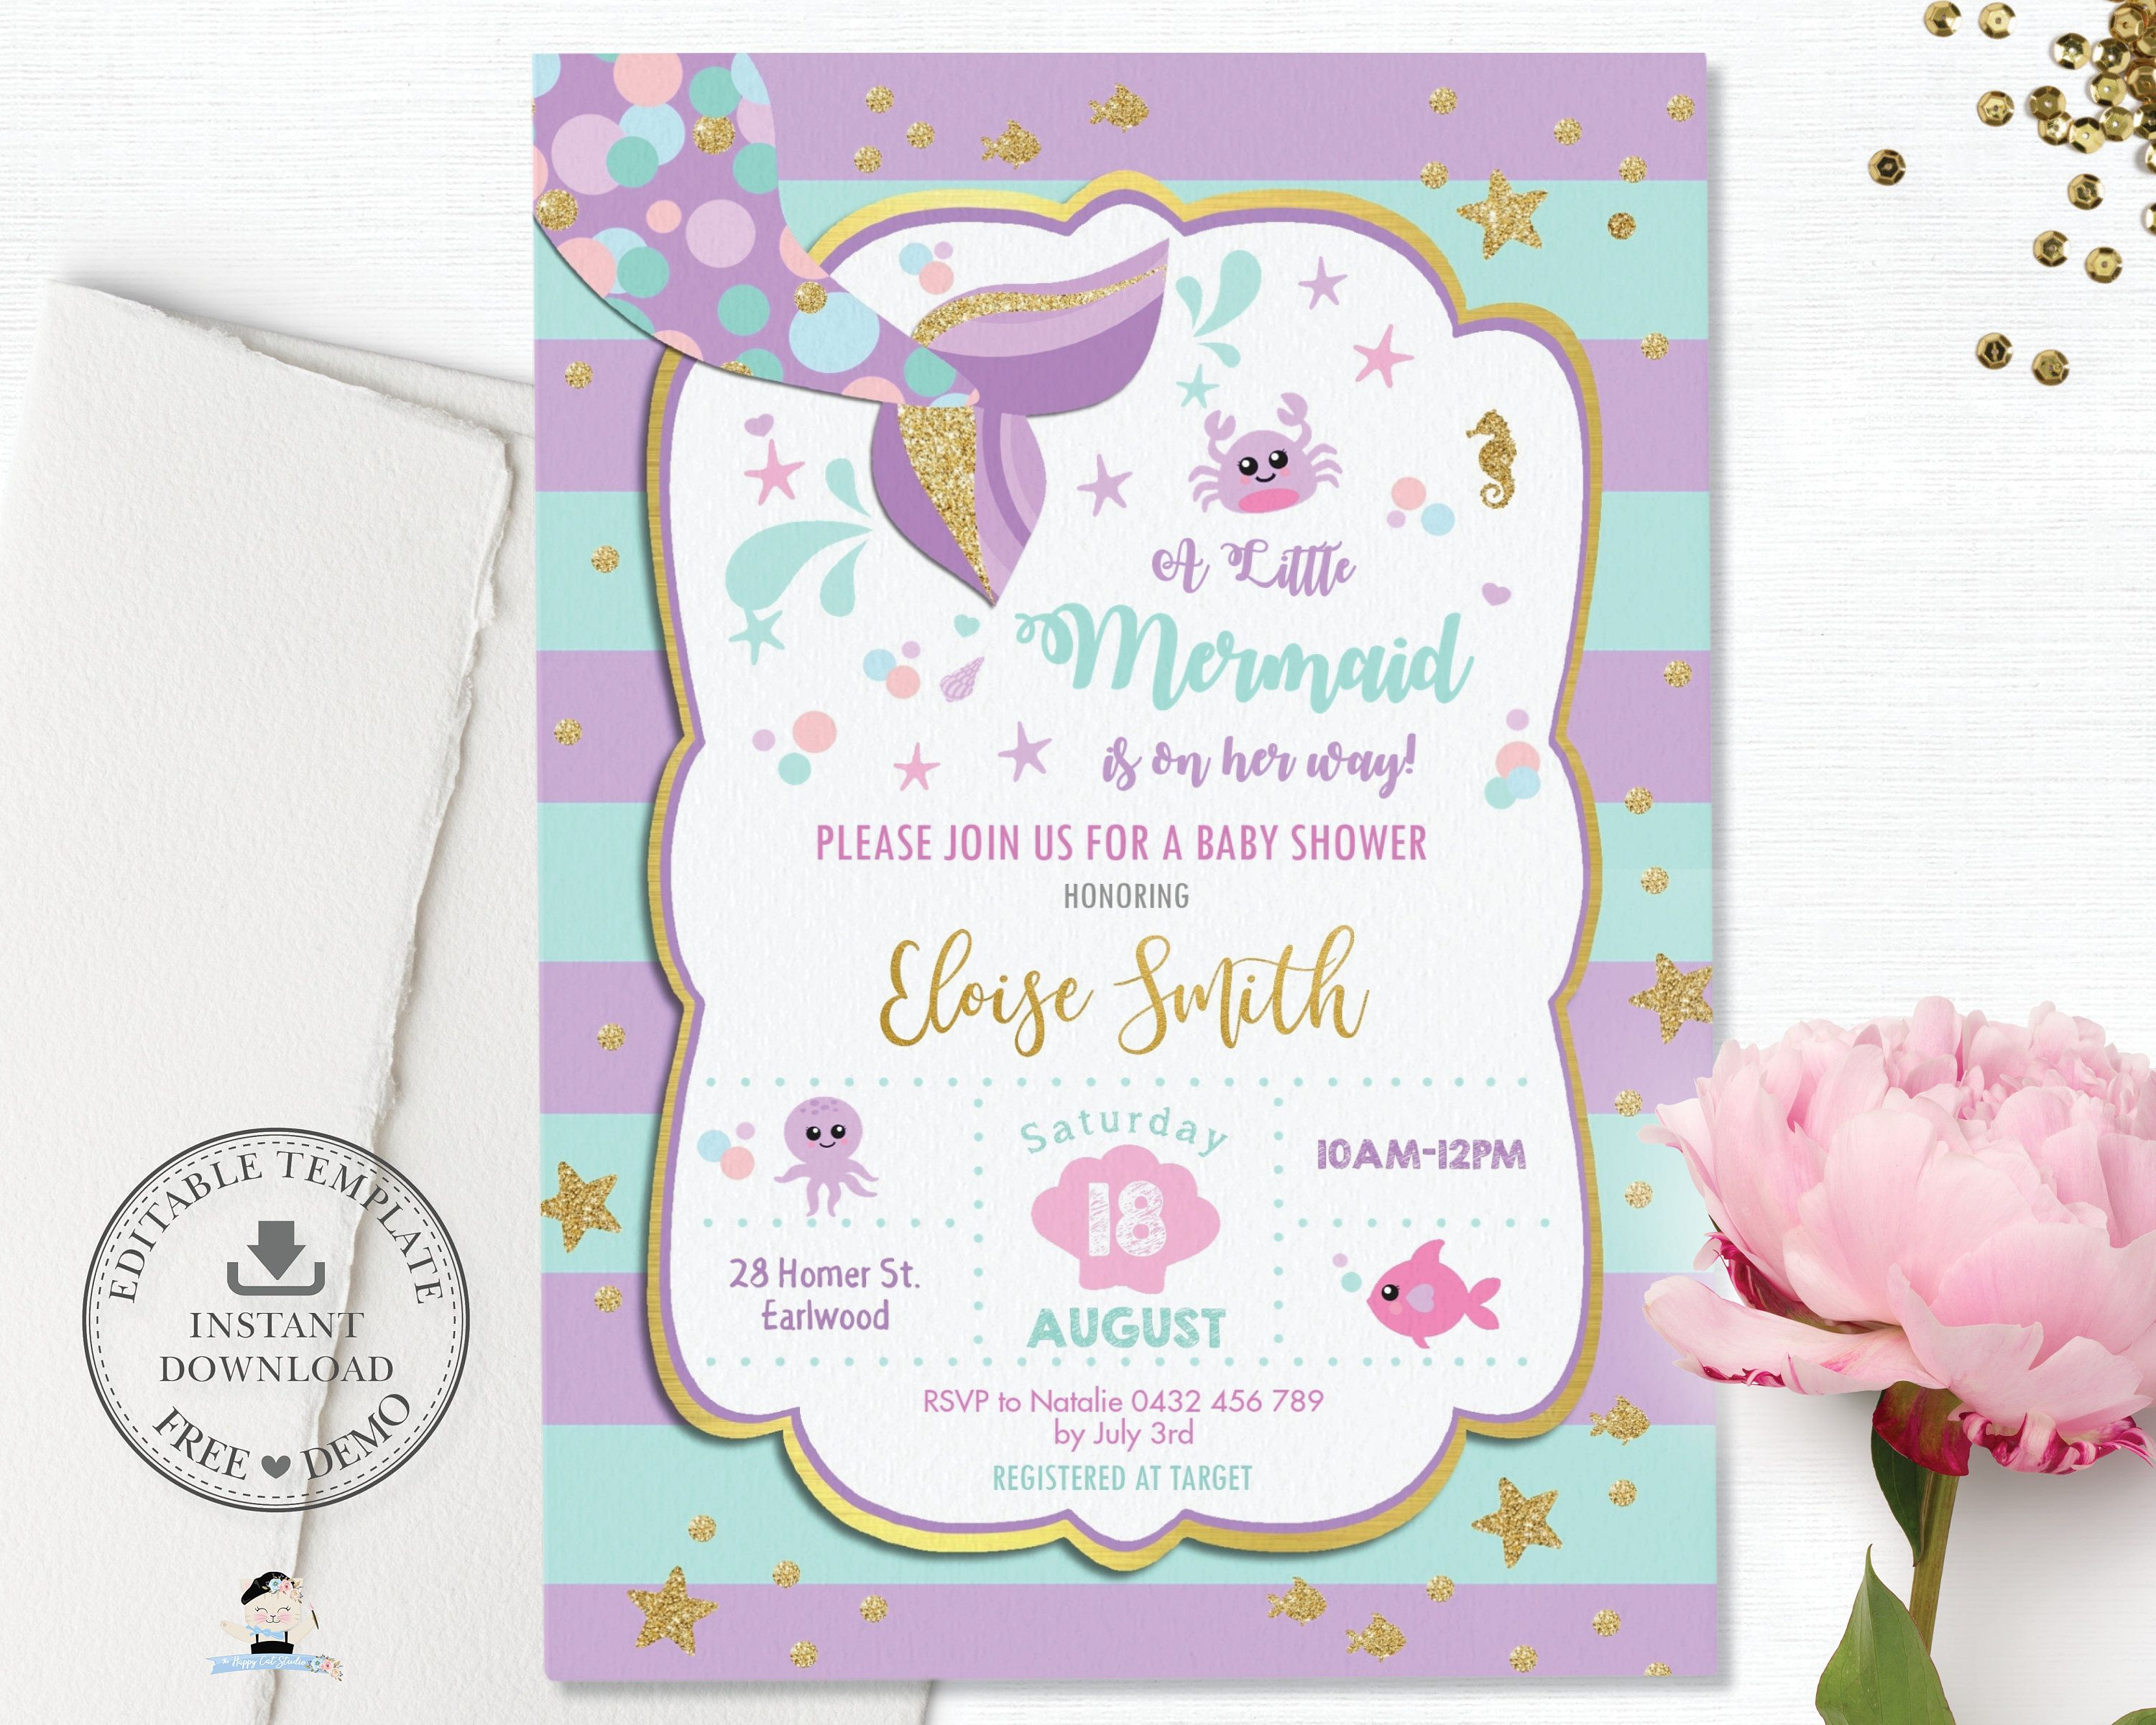 Mermaid Baby Shower Invitation Editable Template Girl Mermaid Tail Turquoise Gold Purple Under The Sea Printable Pdf Instant Download Mt1 Mermaid Baby Shower Invitations Mermaid Invitations Mermaid Baby Showers